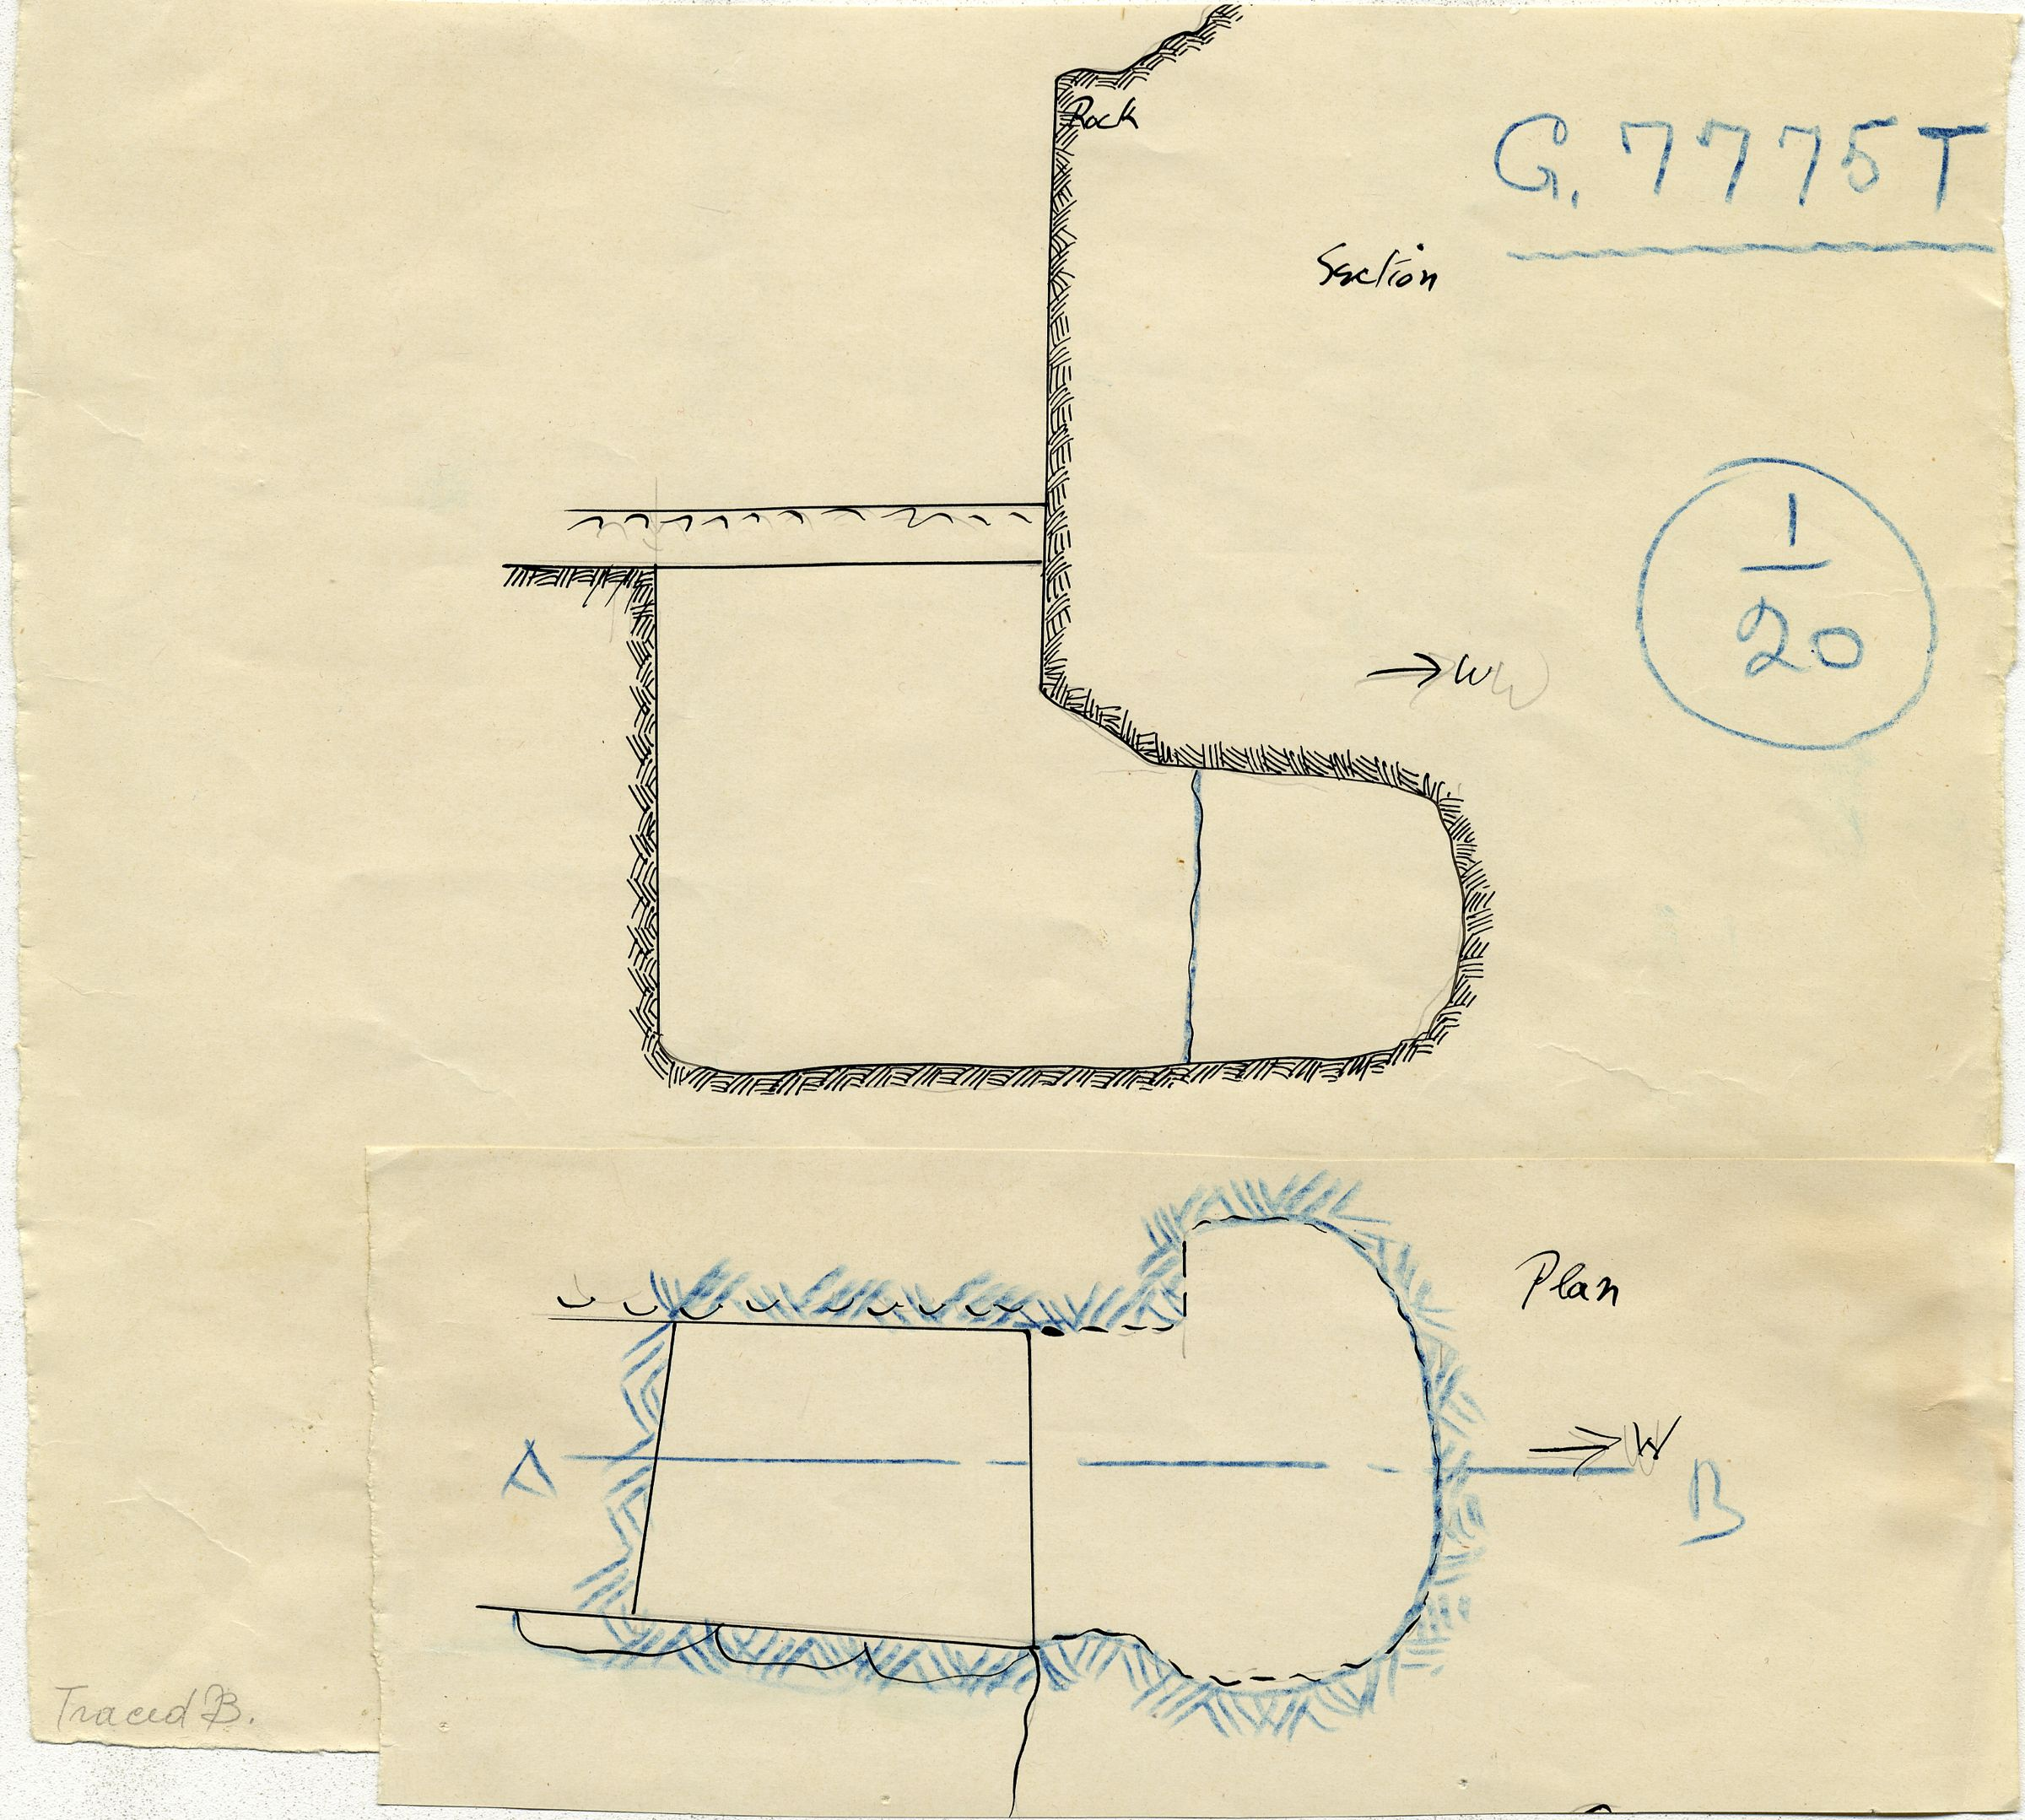 Maps and plans: G 7775, Shaft T